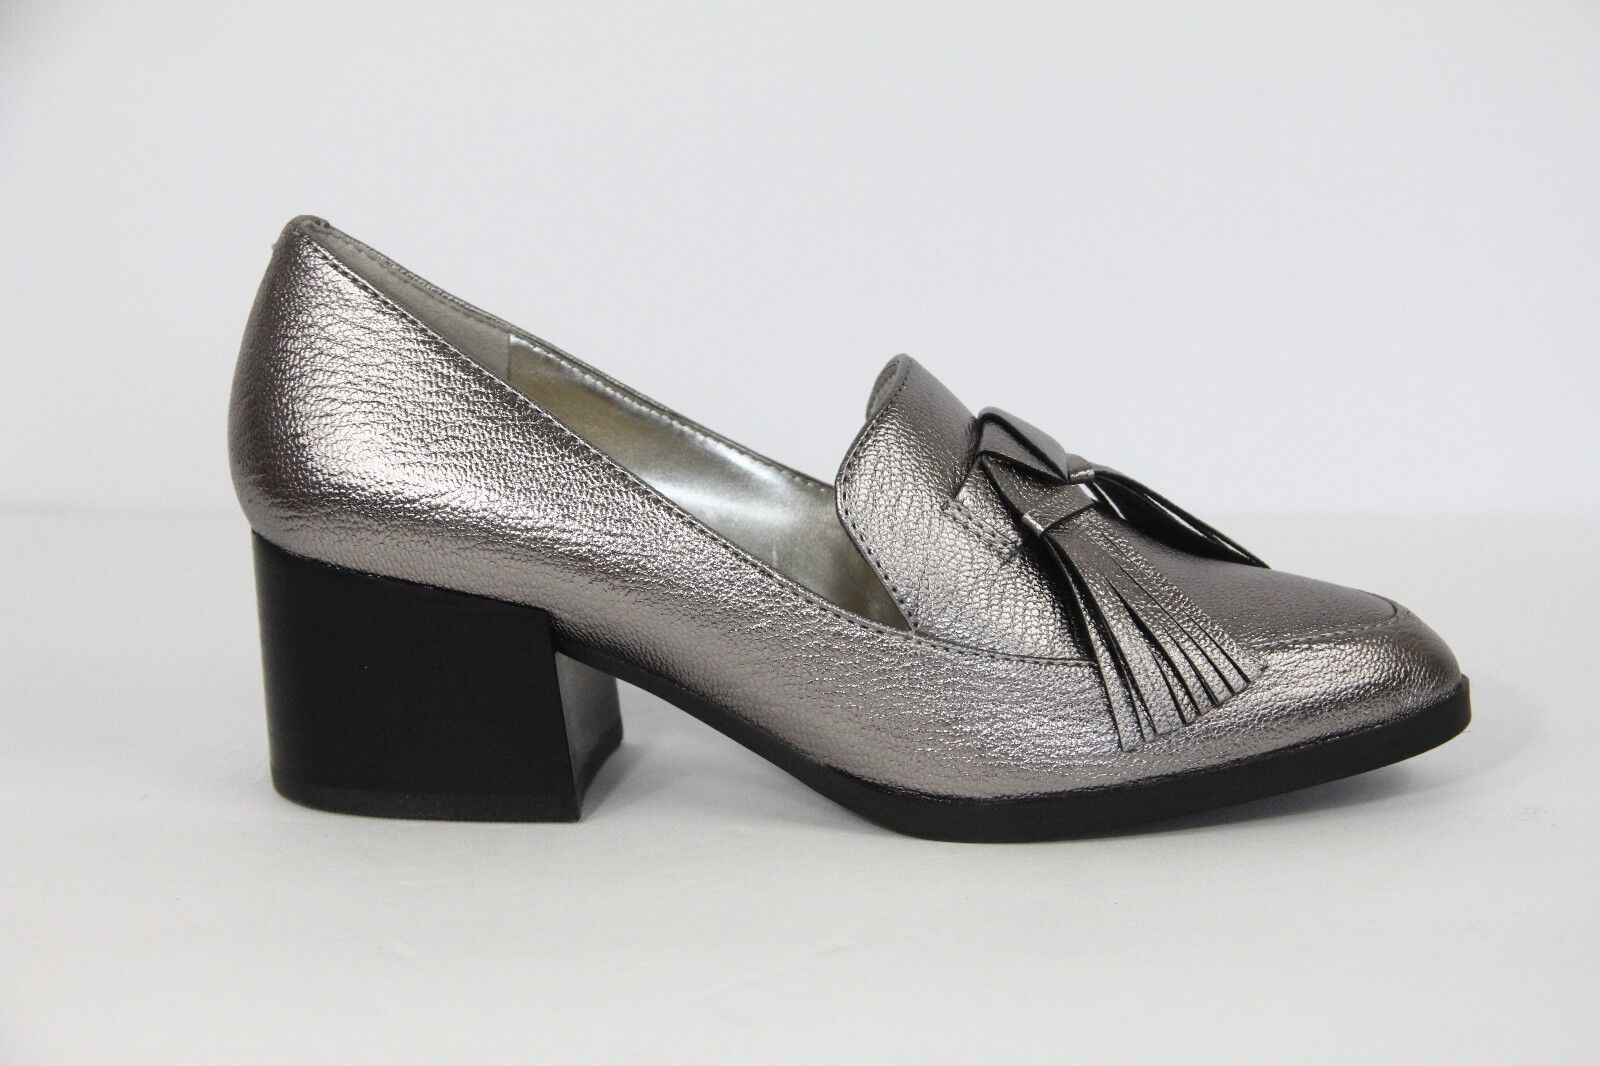 Marc sz Fisher Loafers Womens Shoes Tassels Faux Leather sz Marc 8.5 Heel Pewter New 31b6cc